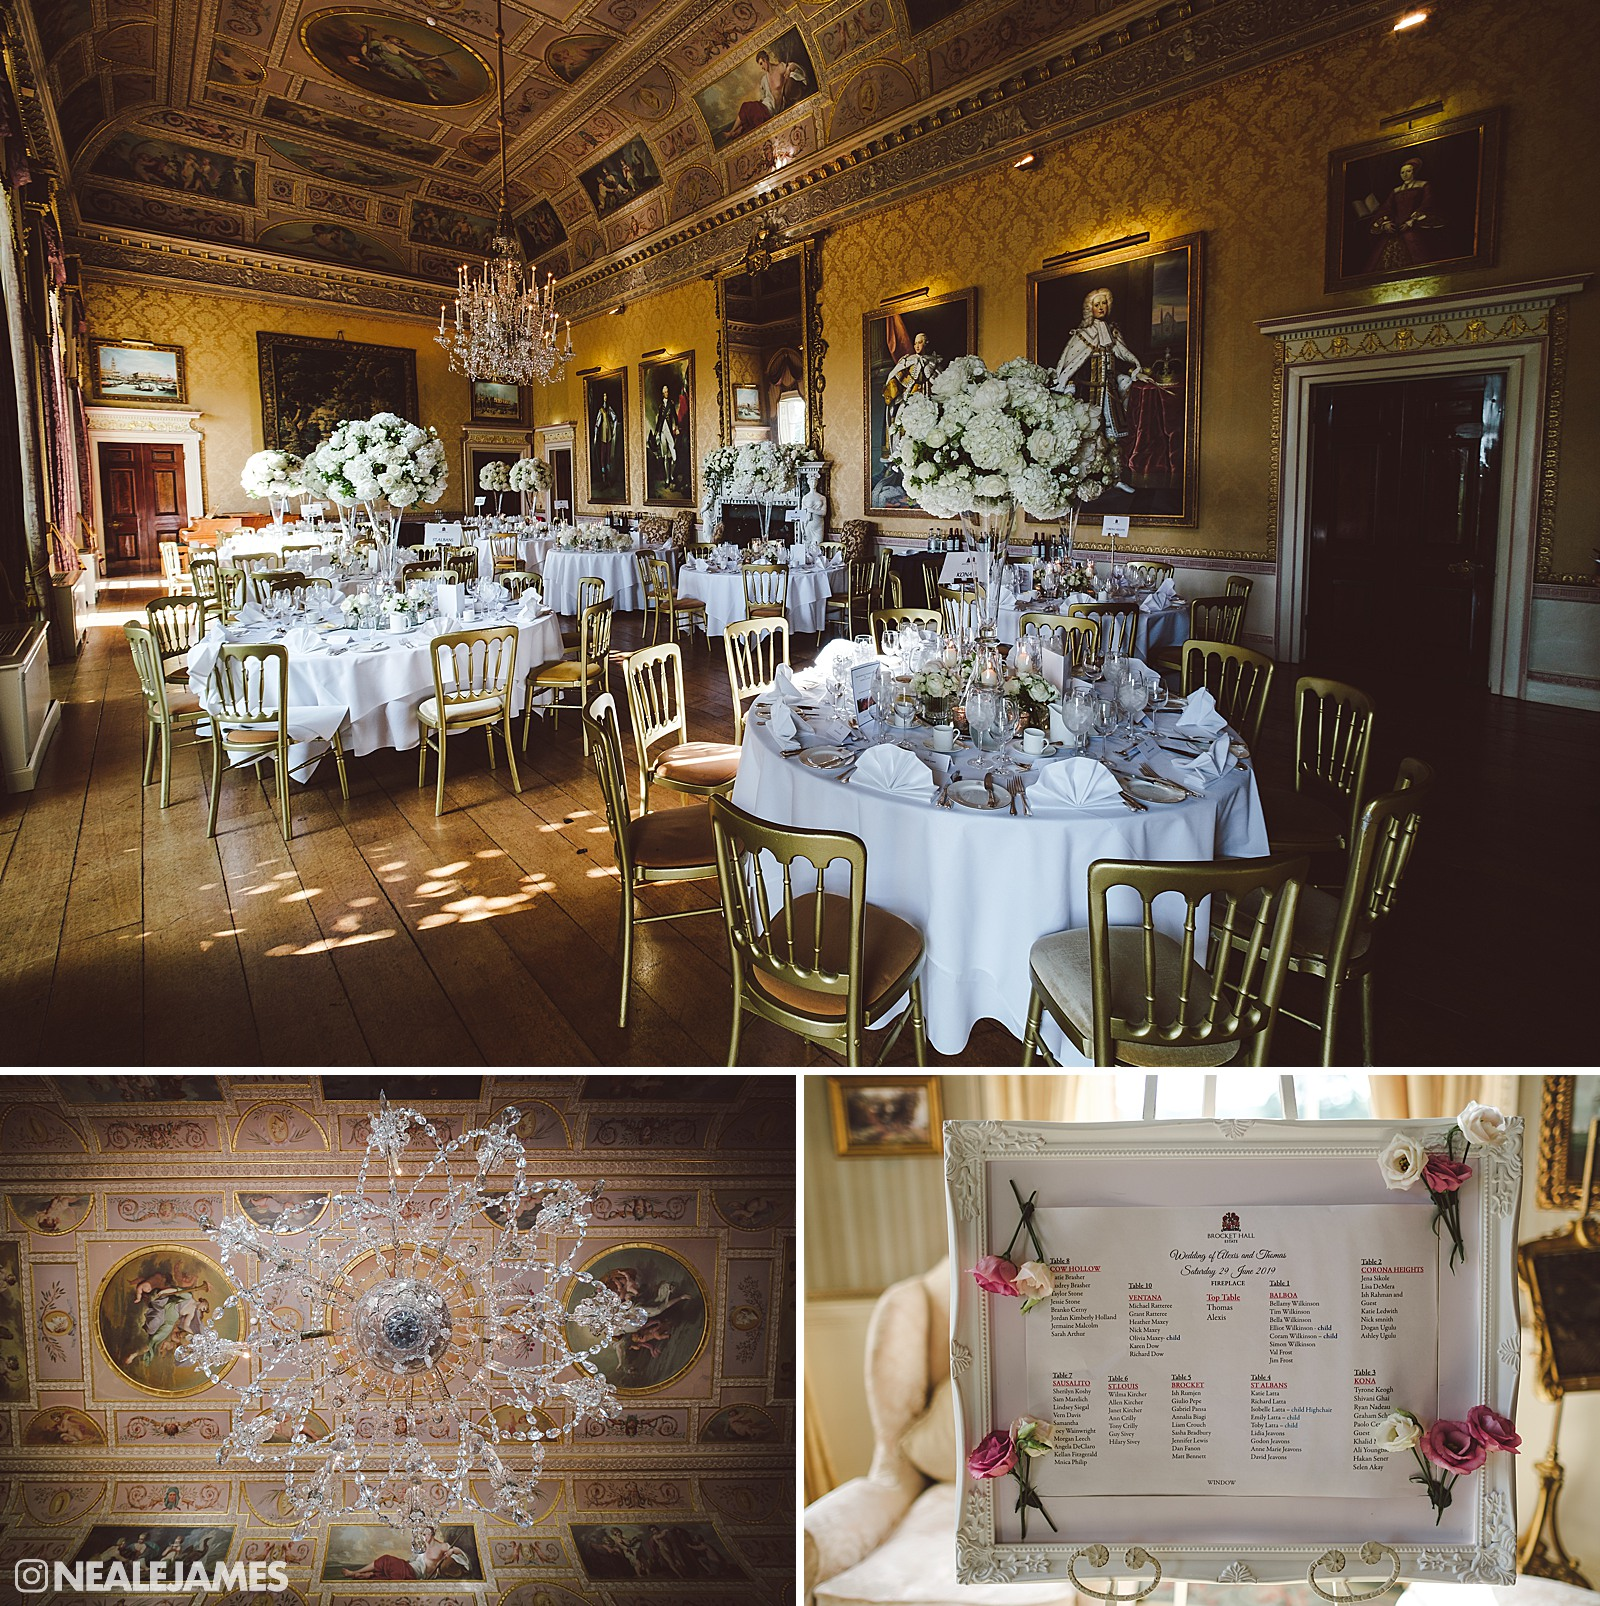 Colour pictures of the tables laid out at Brocket Hall wedding in Hertfordshire